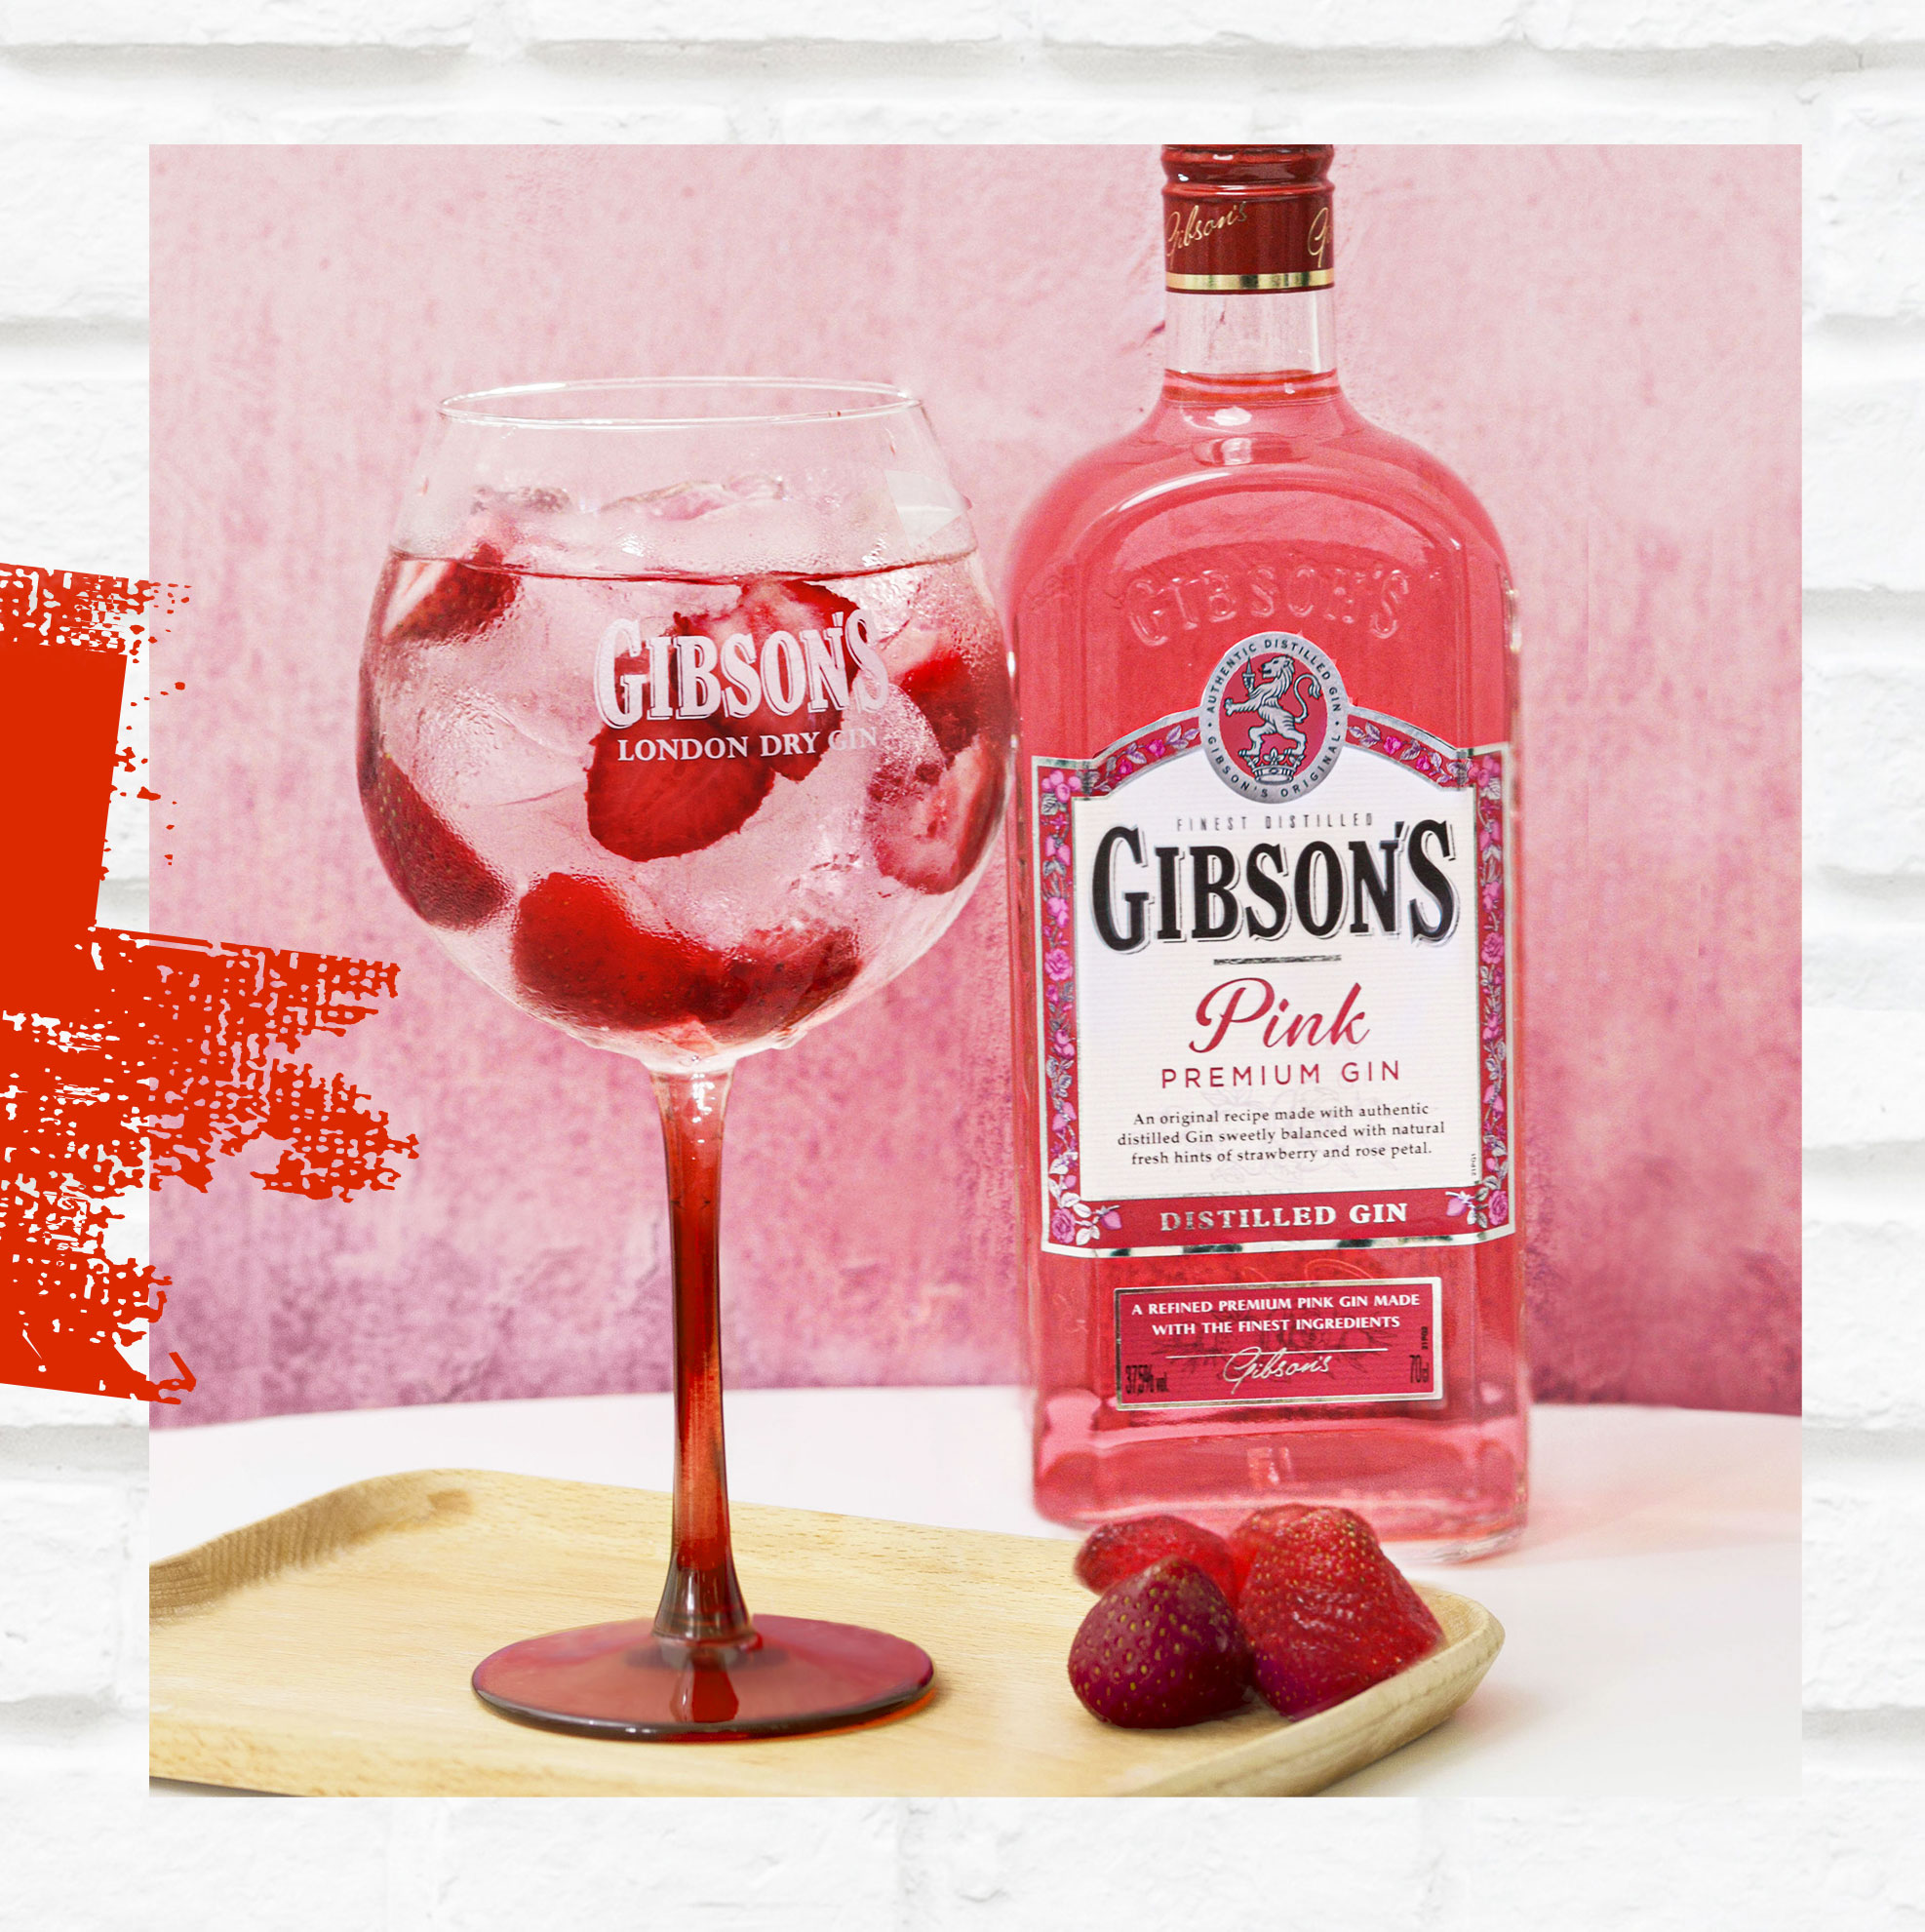 Gibsons Pink